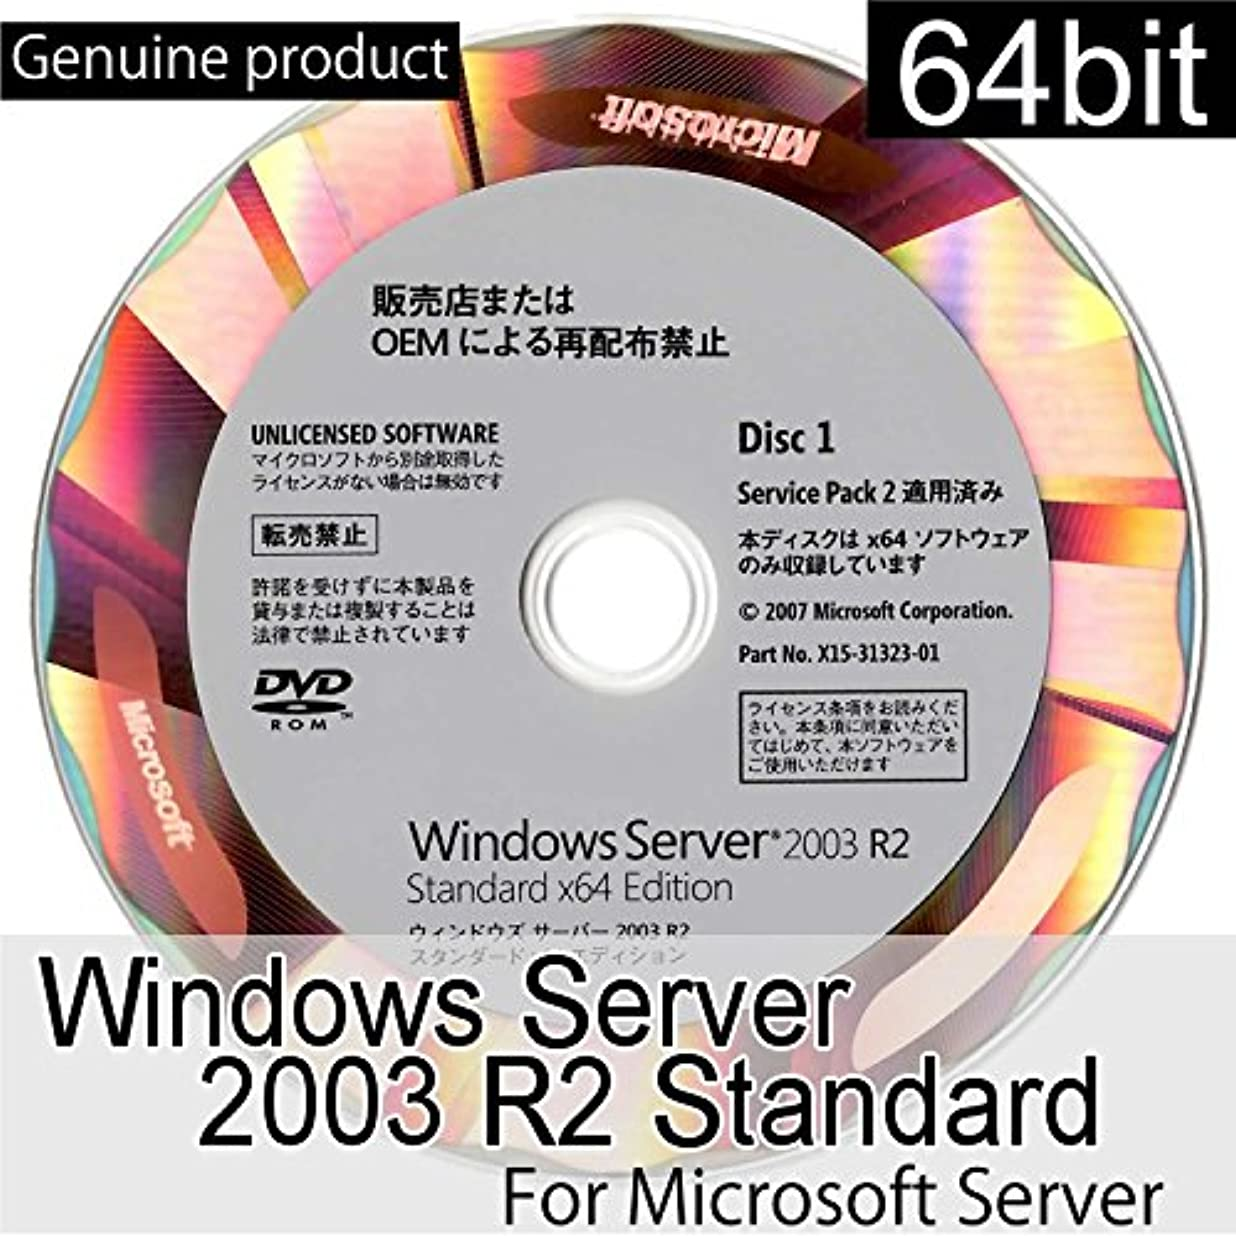 やろうゆりかご知的[JP/64bit] Windows Server 2003 R2 Standard /64bit (日本語版)